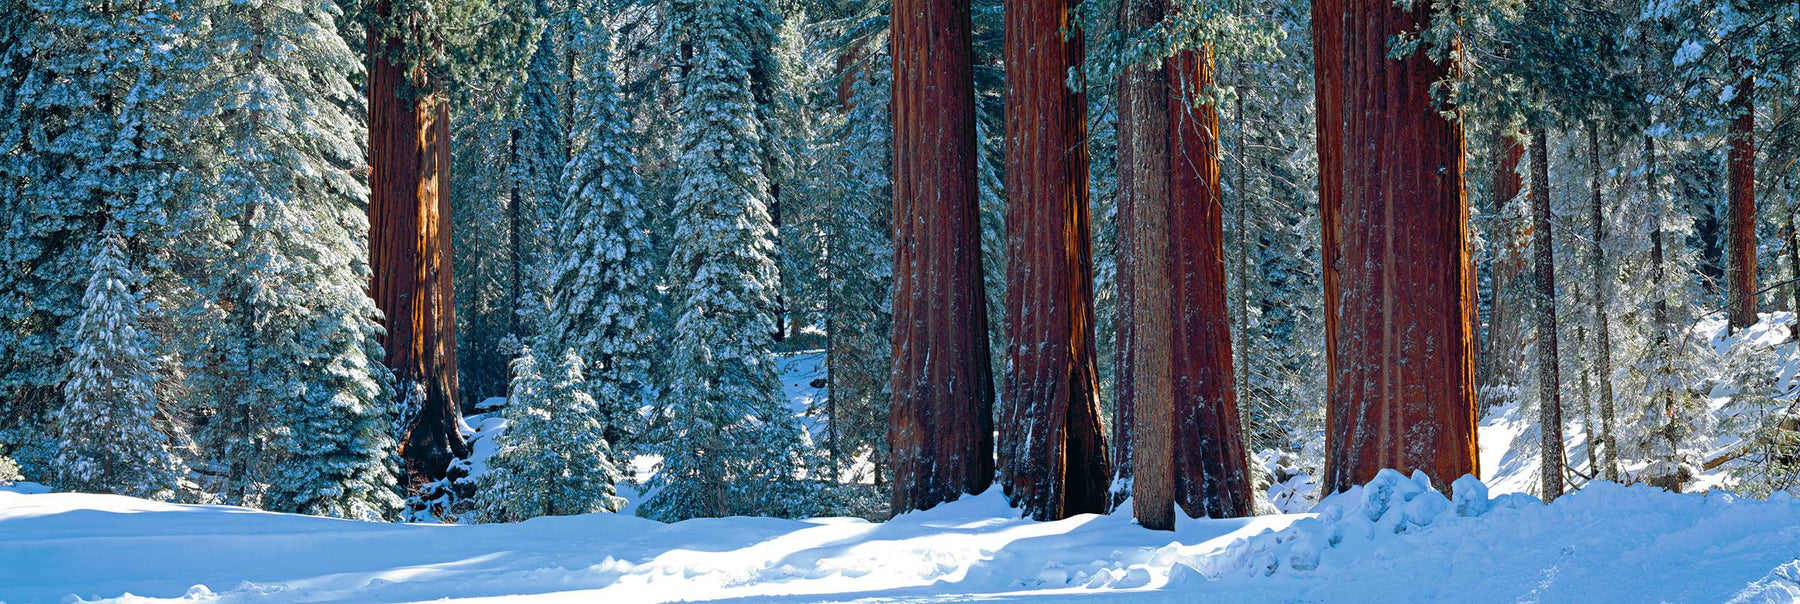 Bases of the snow covered Giant Sequoia trees in the Sequoia National Forest California